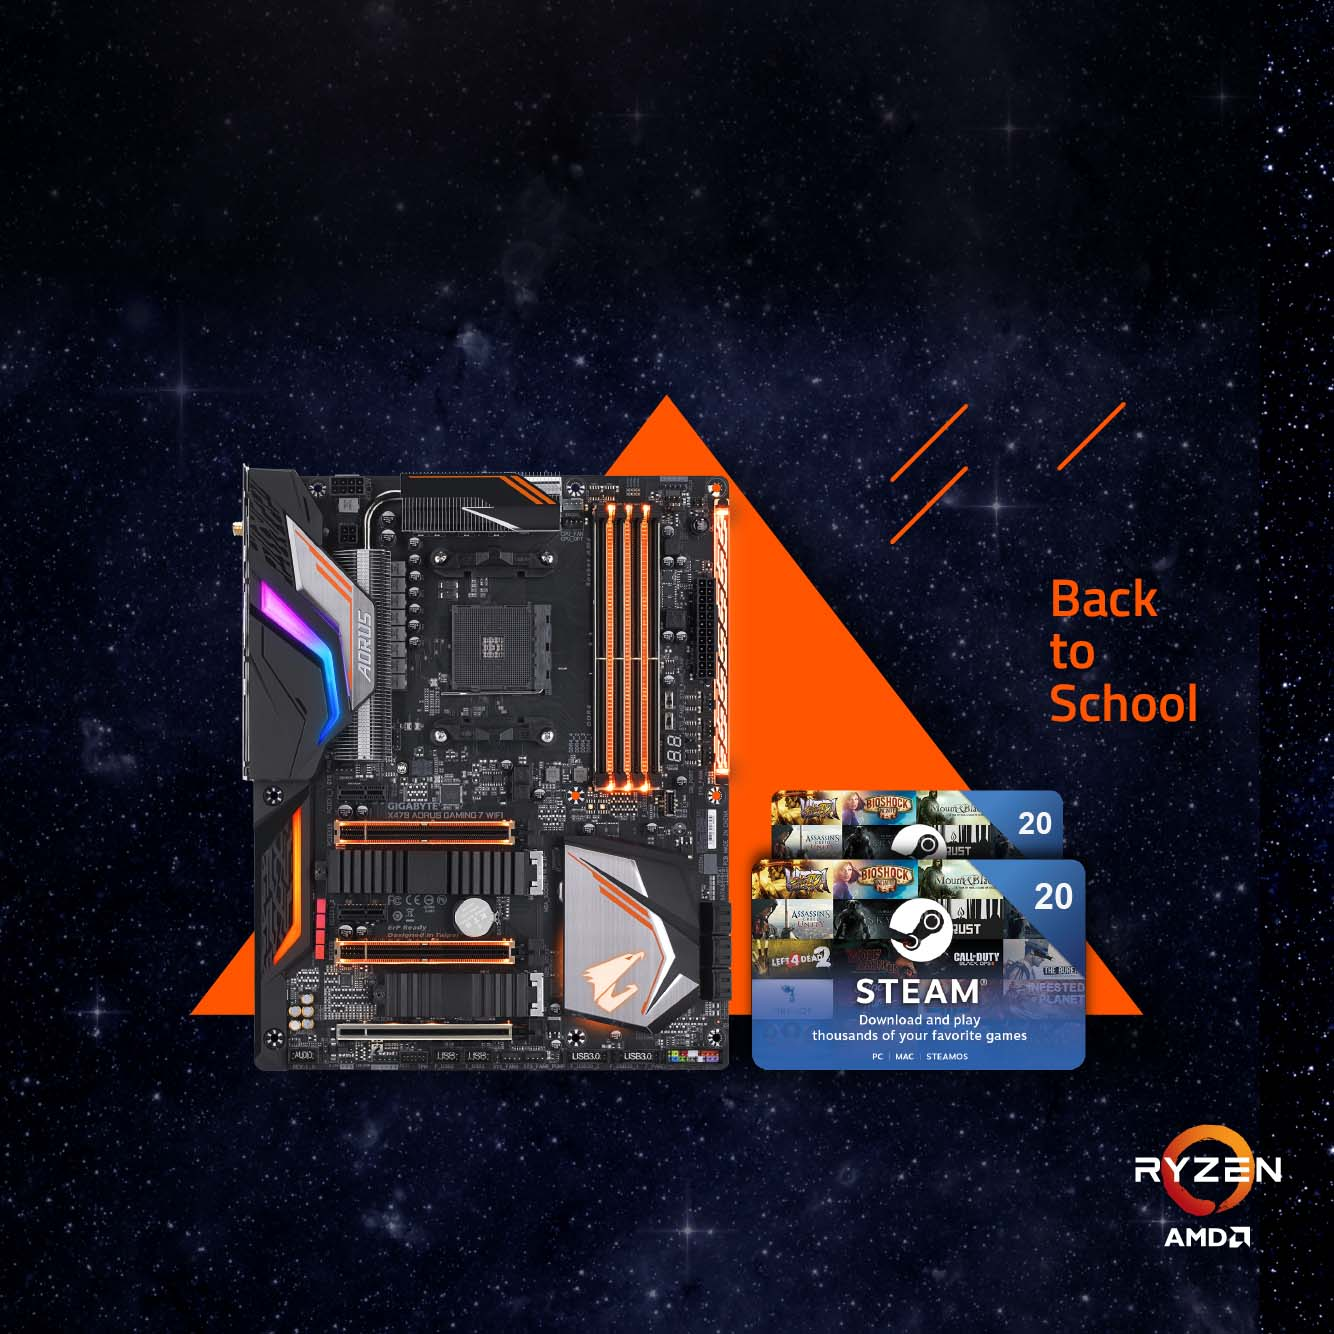 Back to School - Buy the latest GIGABYTE AM4 motherboards get up to €40 FREE STEAM wallet codes!